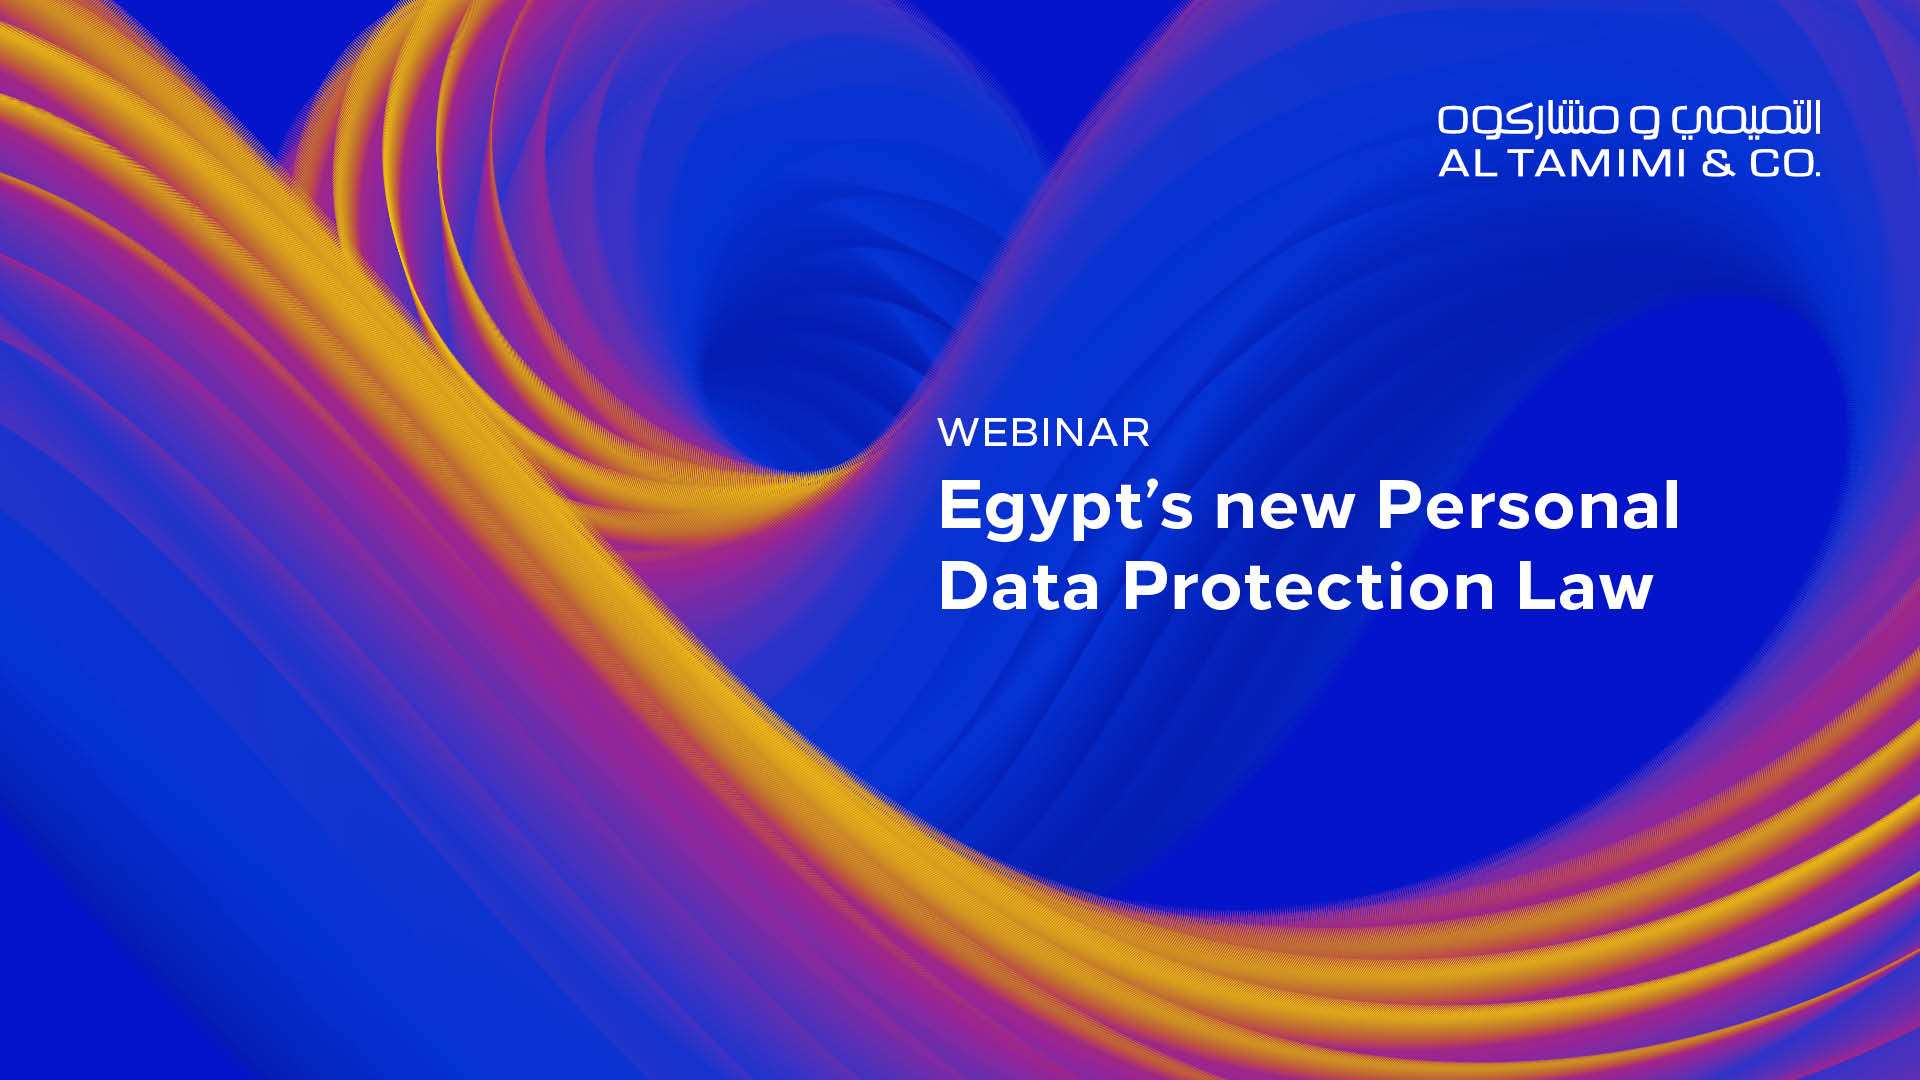 Egypt's new Personal Data Protection Law